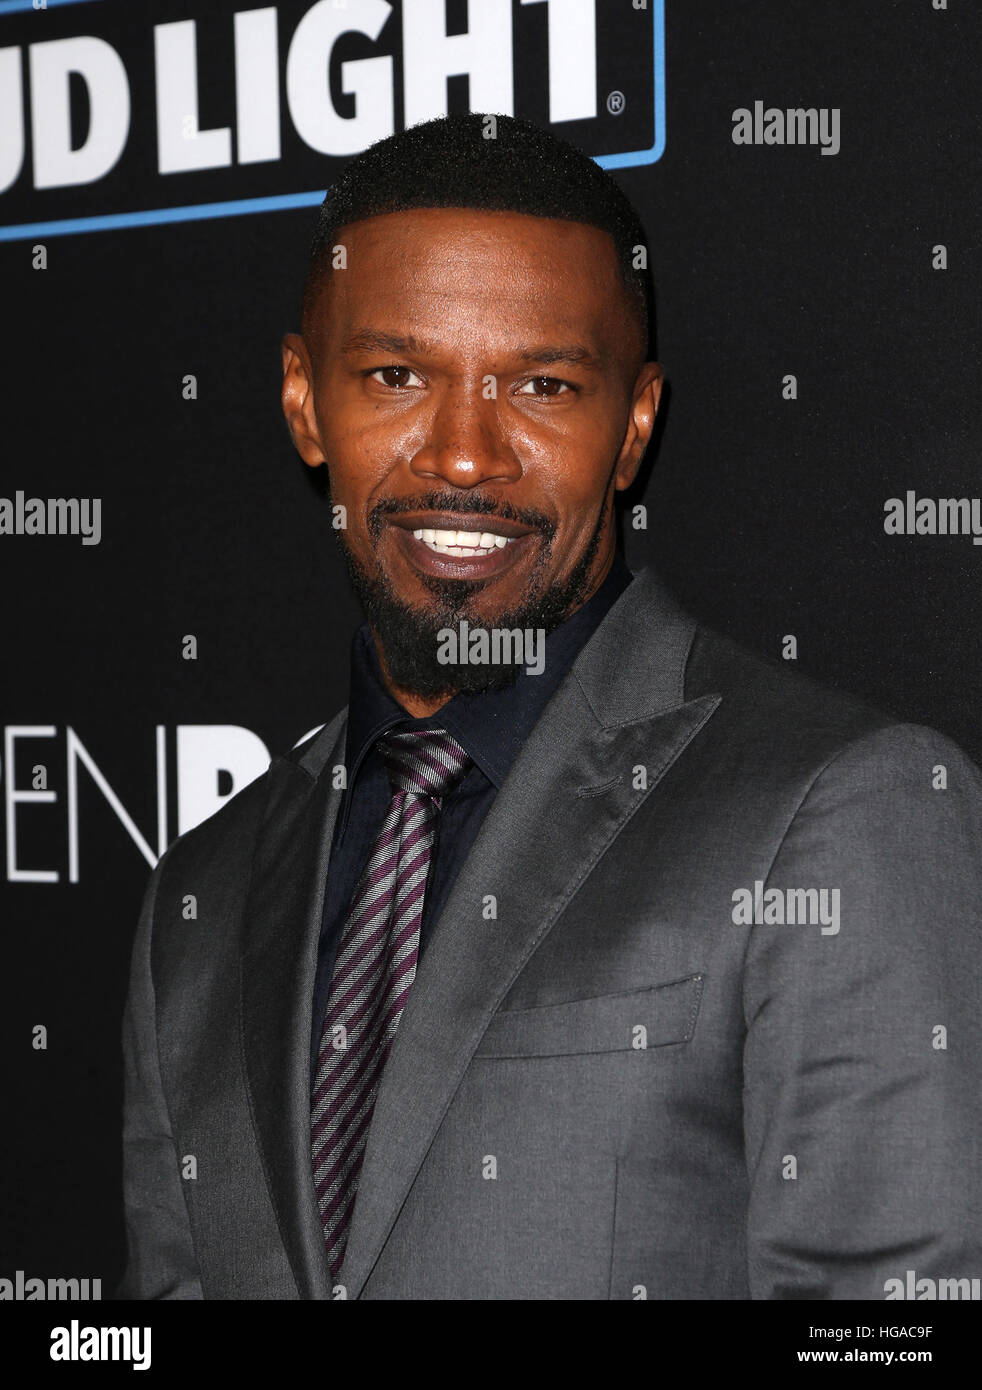 Los Angeles, CA, USA. 05 Jan, 2017. Jamie Foxx, pour Premiere d'Open Road Films' 'Sleepless', au Photo Stock